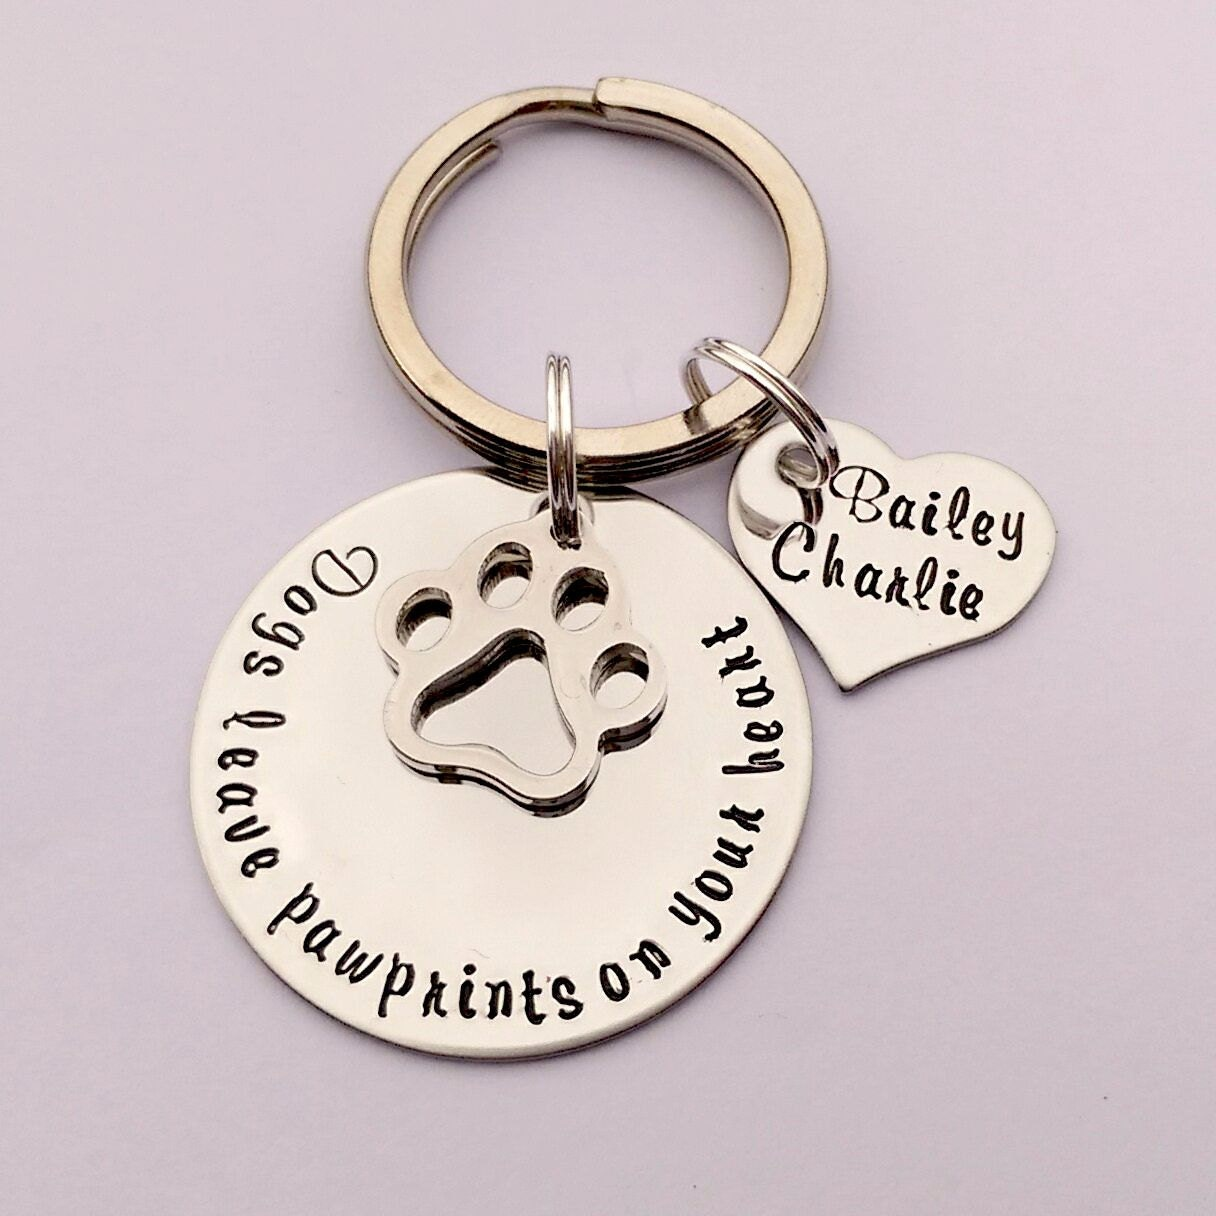 Personalised dog keyring - personalised dog keychain - dogs leave pawprints on your heart - pet loss memorial - gift present for dog lover